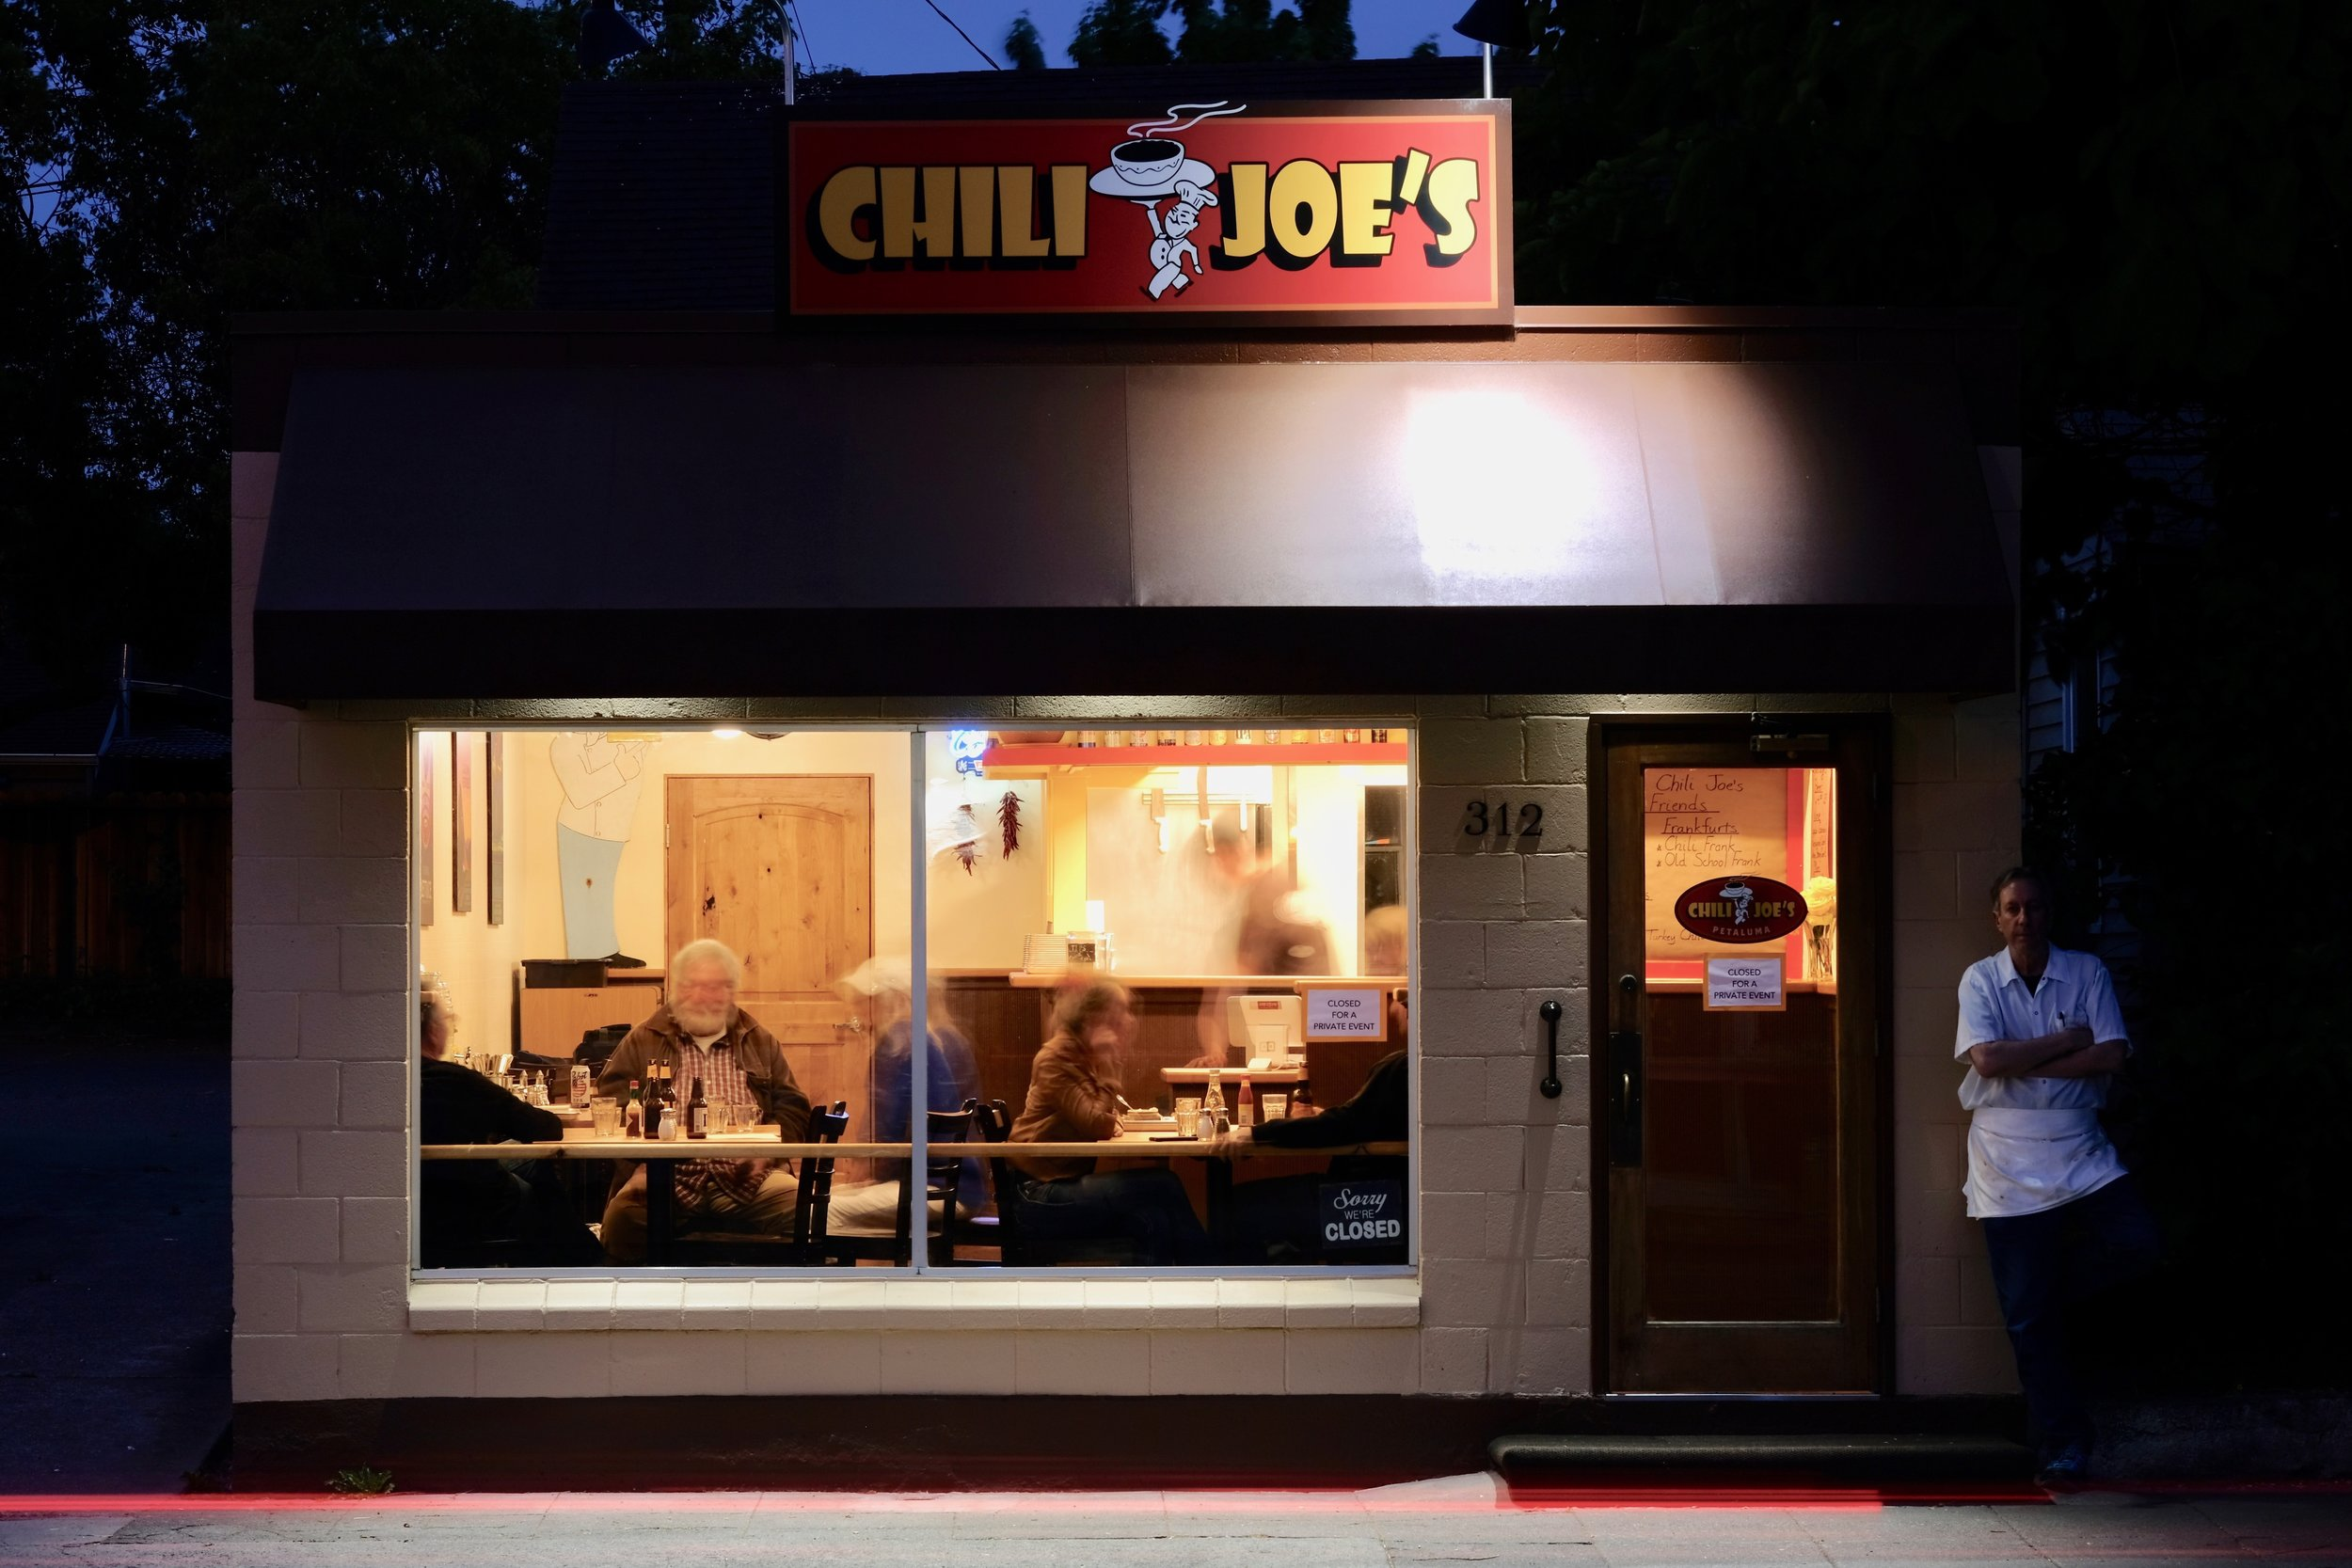 16 Chili Joe's at Night copy 2.jpeg